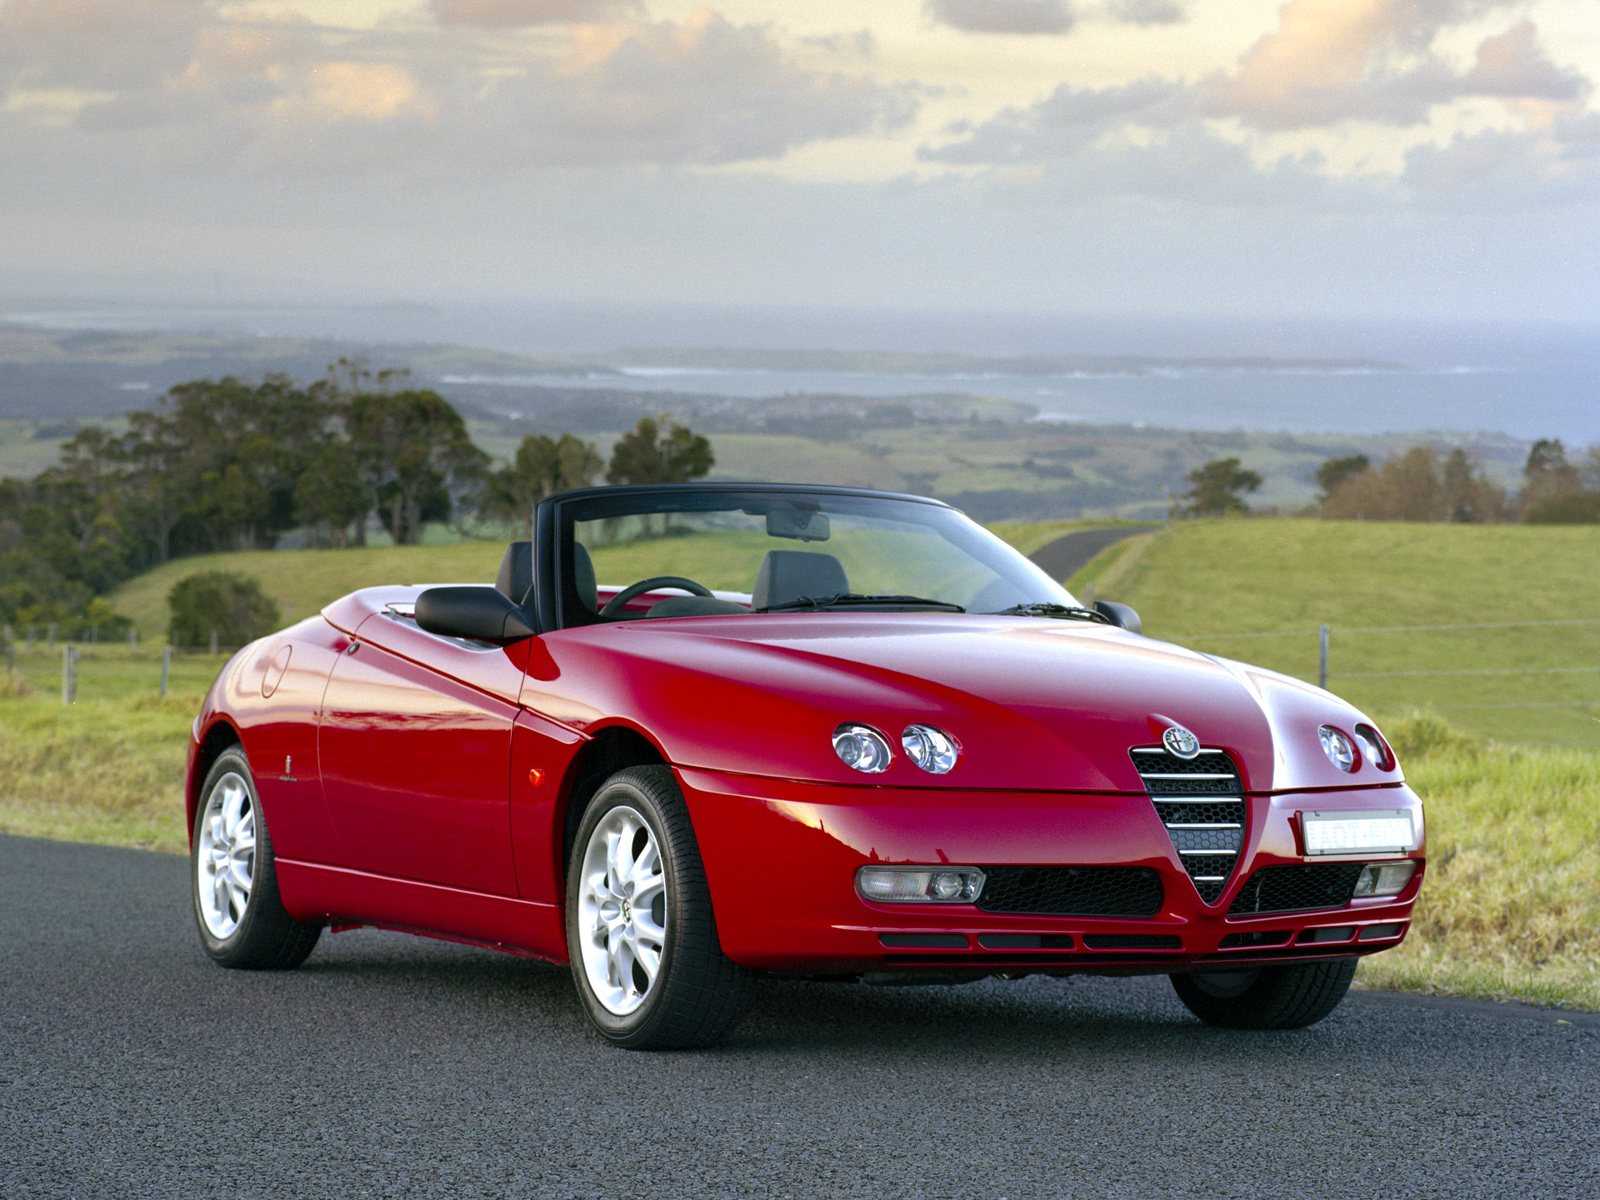 2005 alfa romeo gtv 916 pictures information and specs auto. Black Bedroom Furniture Sets. Home Design Ideas